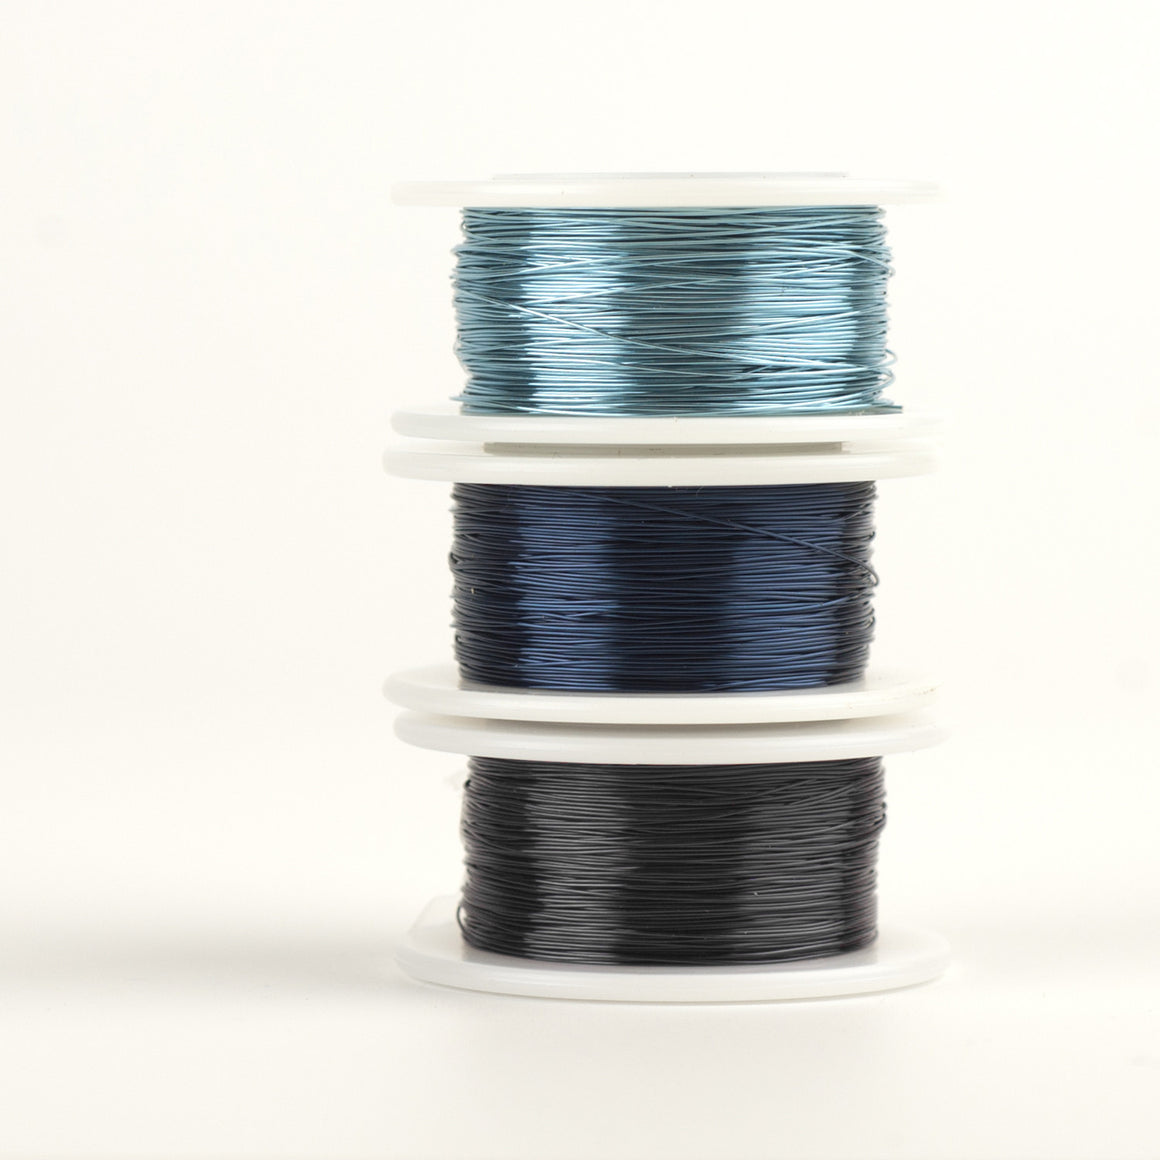 BLUE Craft Wire - 3 Extra long spools - 120 feet each - Yooladesign